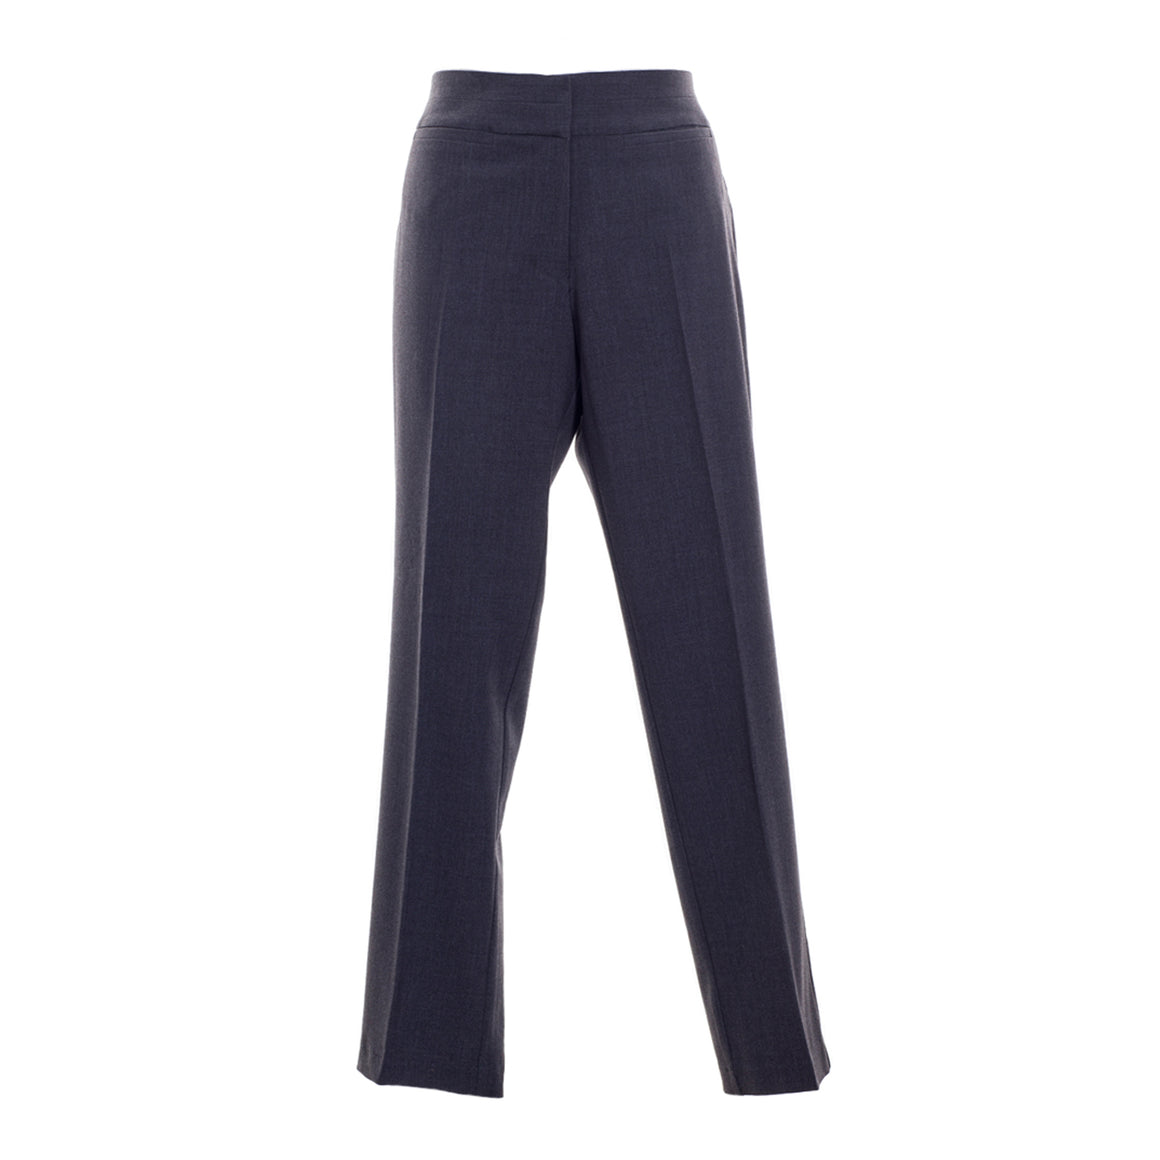 Senior Girls Trouser Slim Fit in Grey